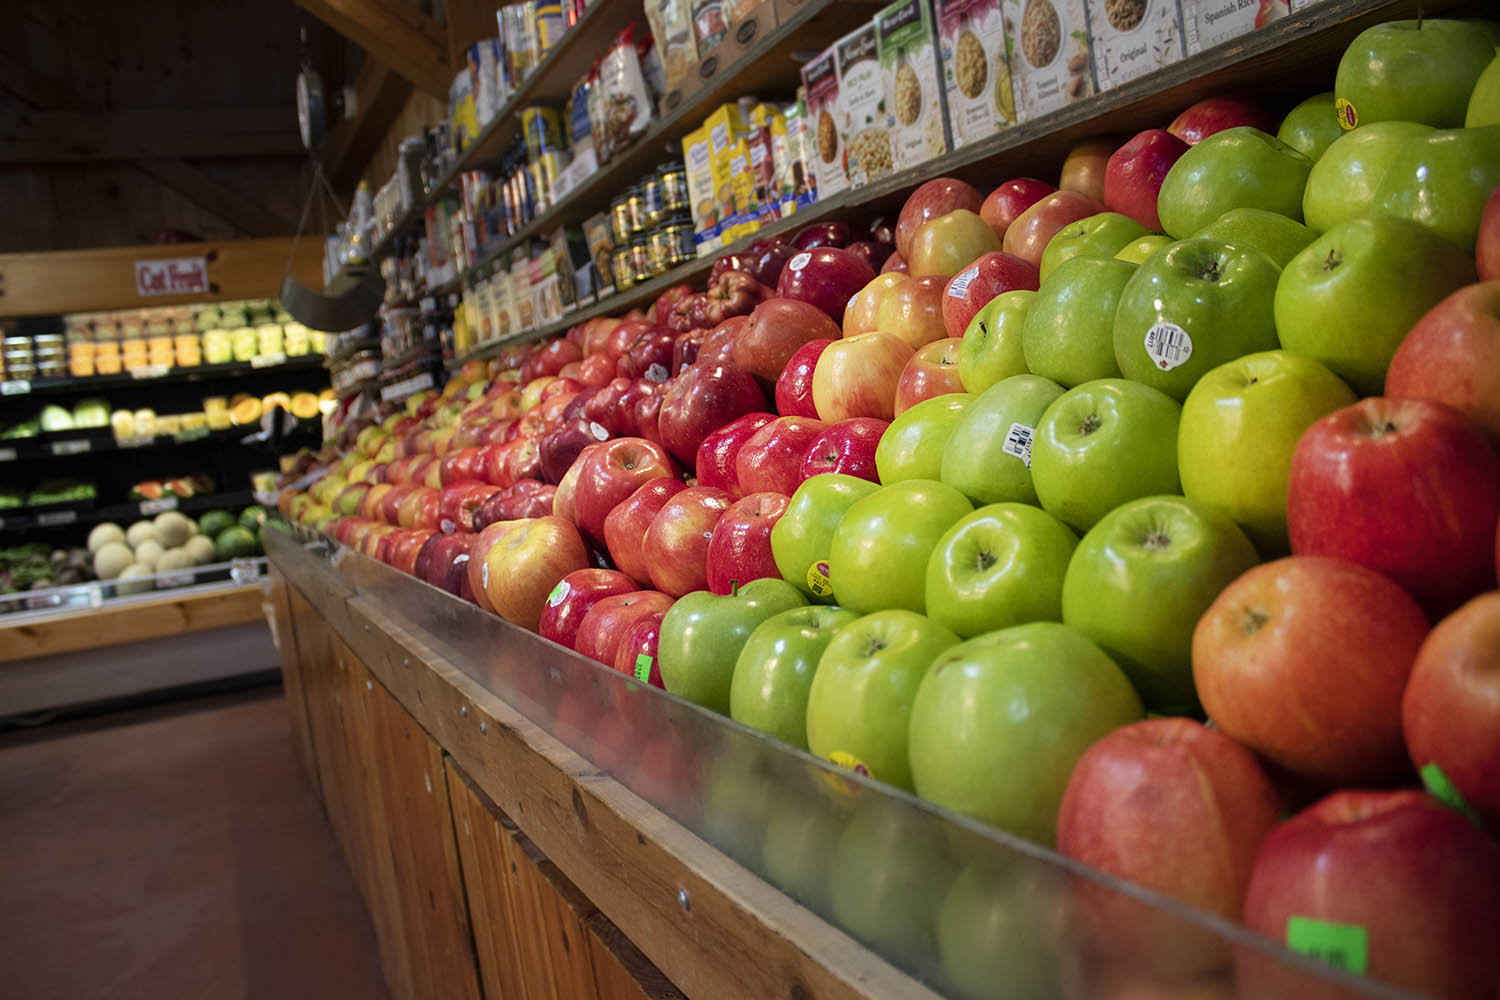 This pictures displays our wide selection of apples!